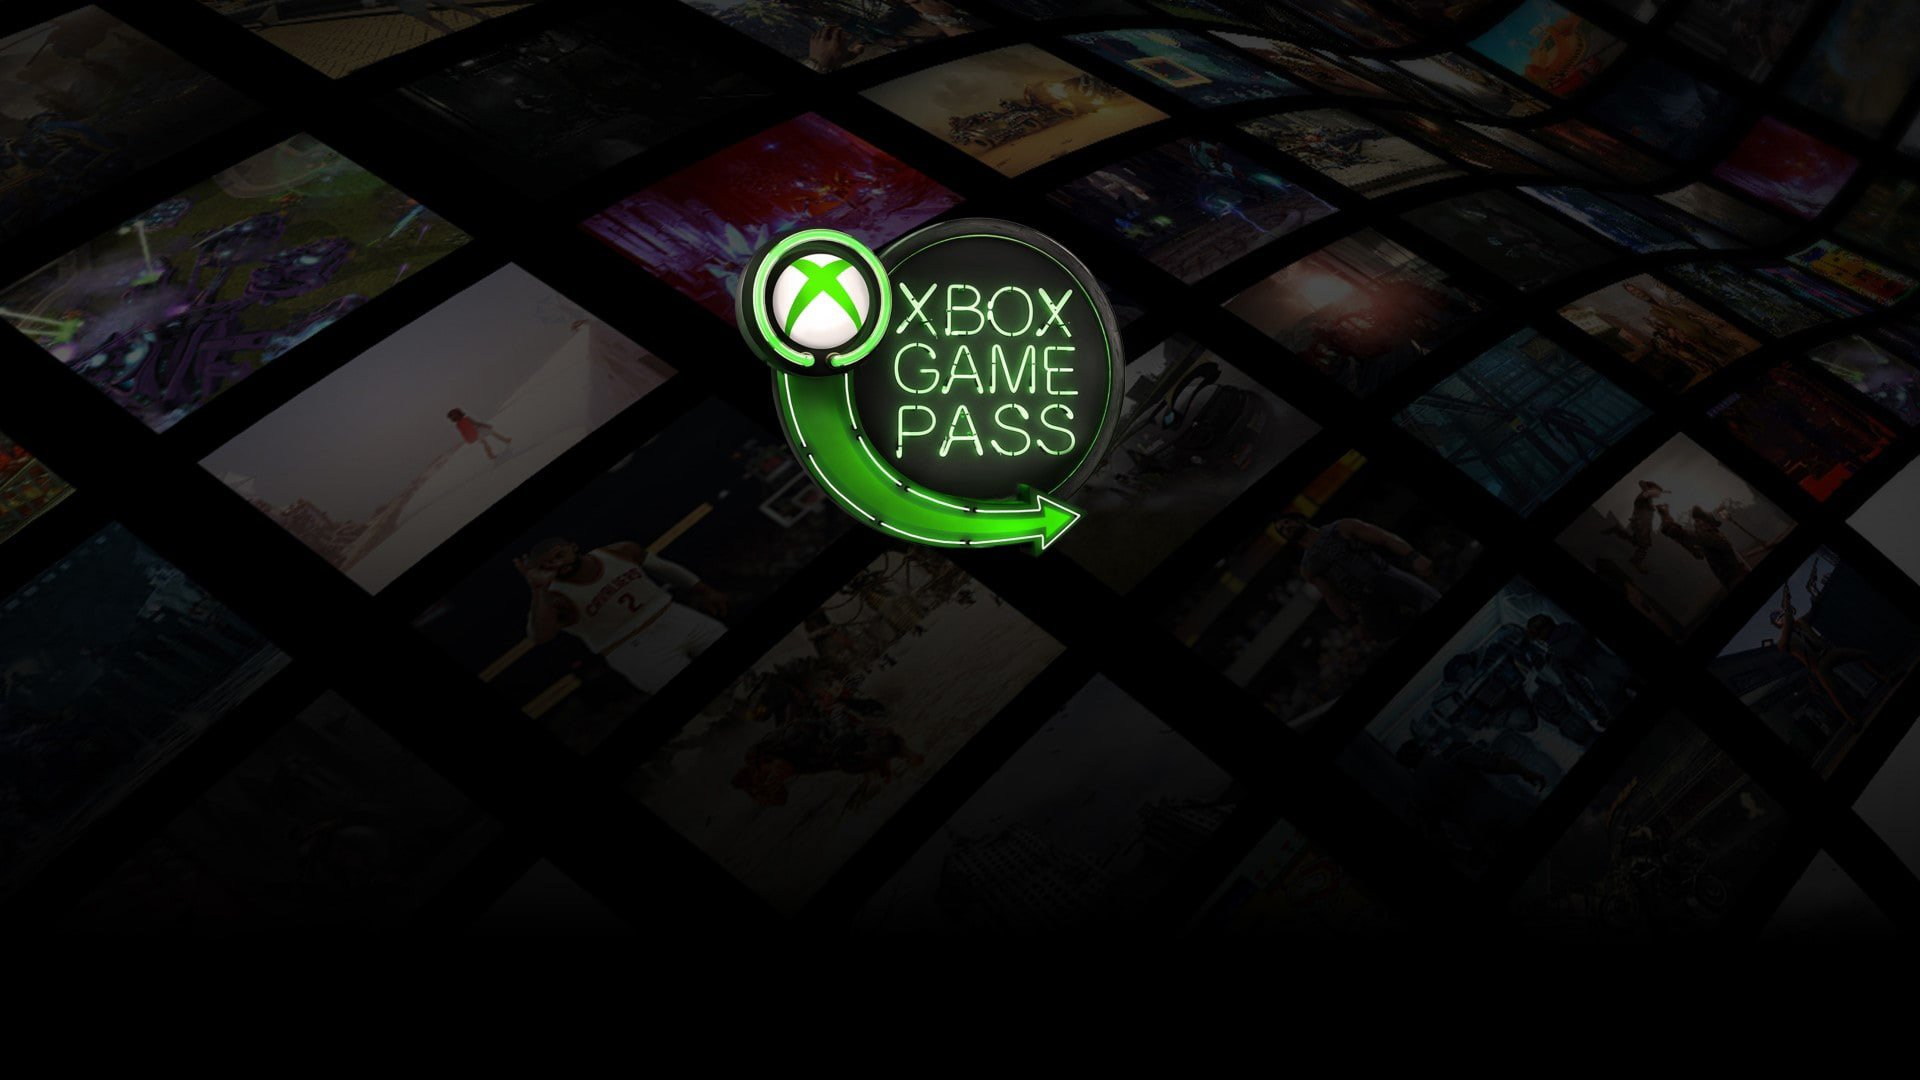 January Xbox Game Pass quests announced ...